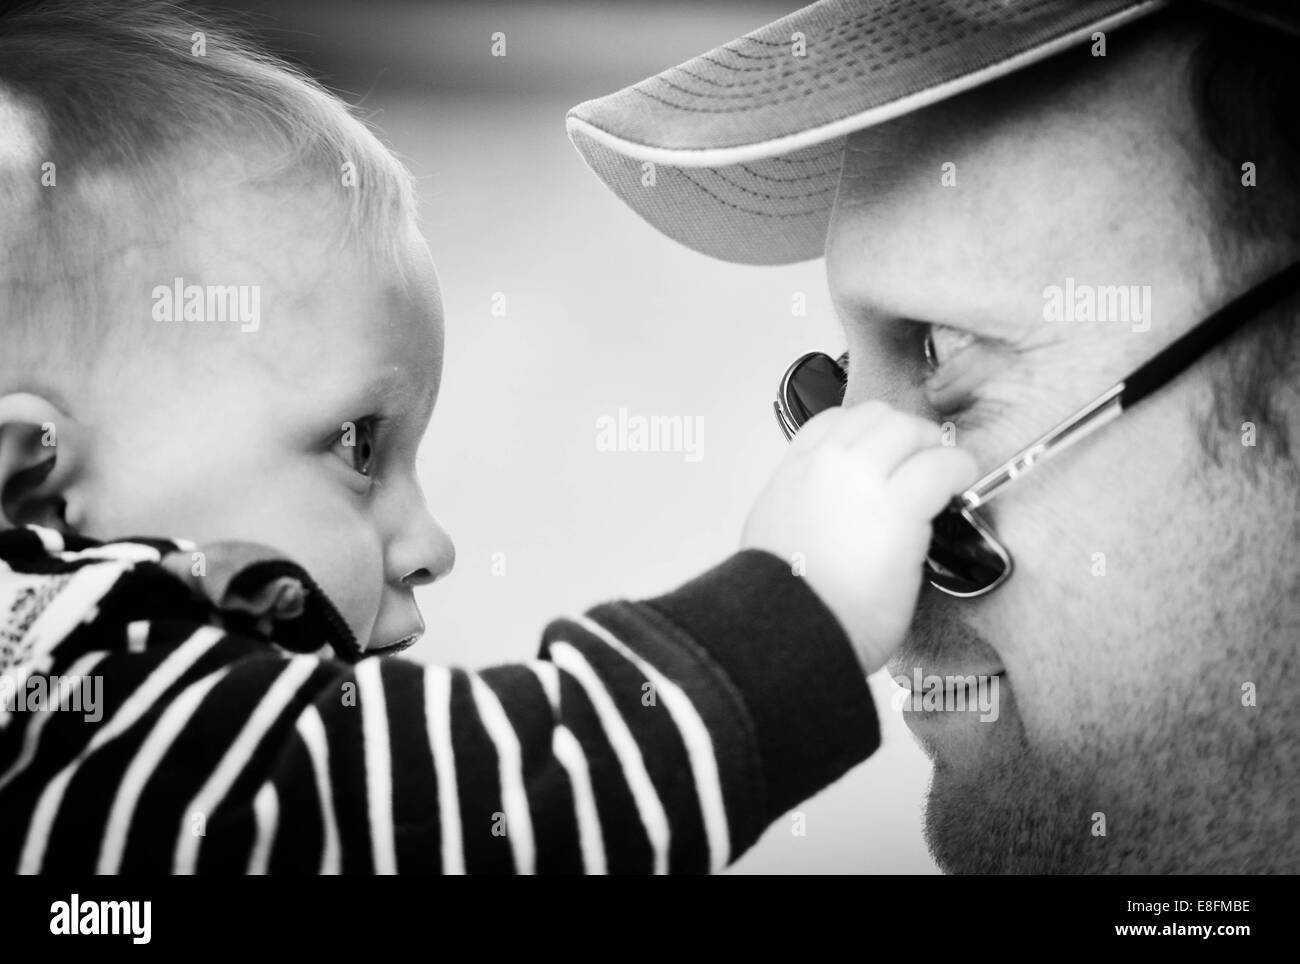 Baby boy playing with his father's sunglasses - Stock Image